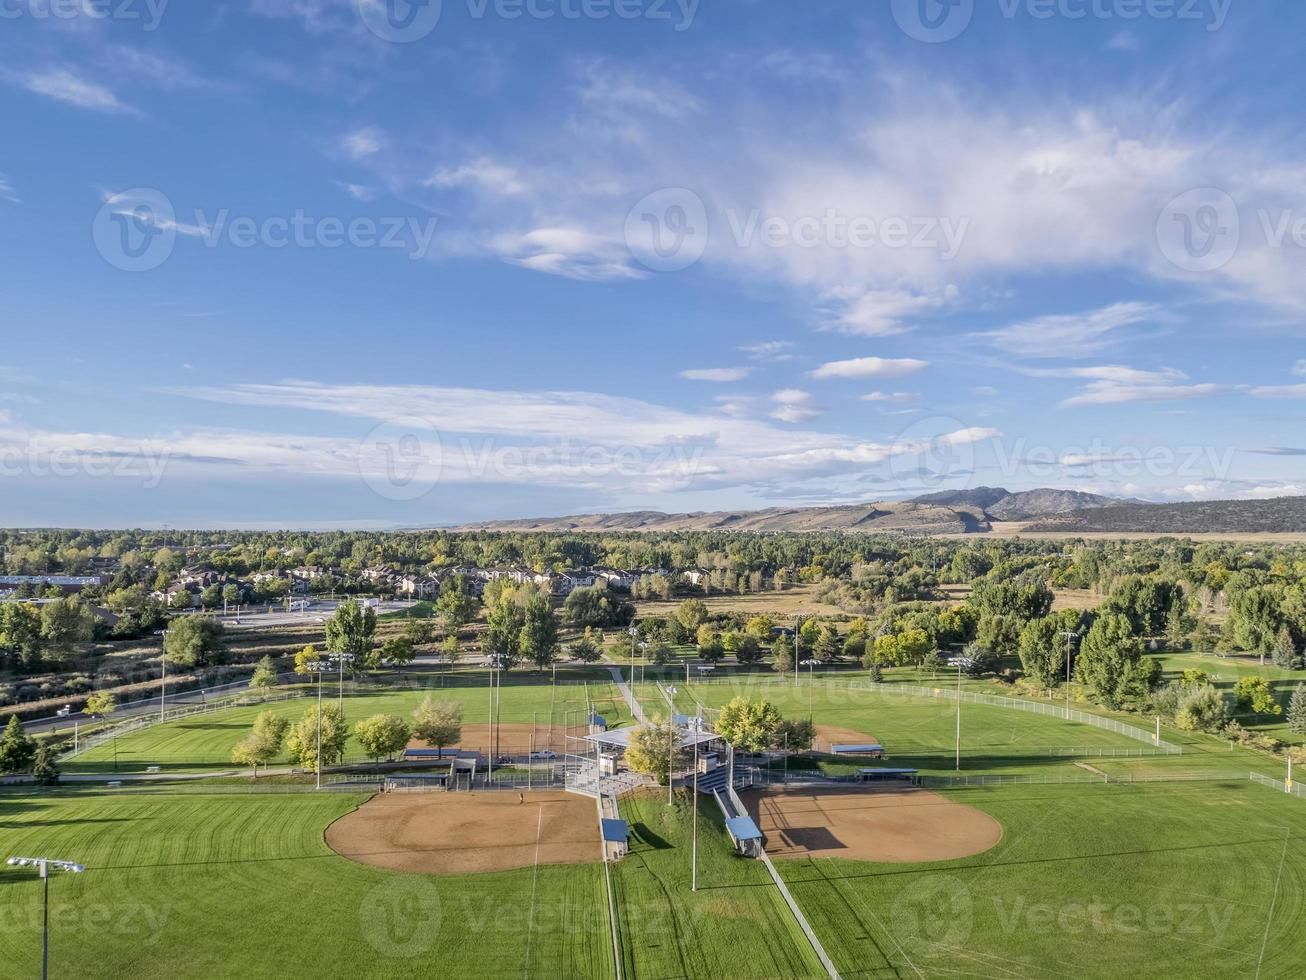 baseball fields aerail view photo